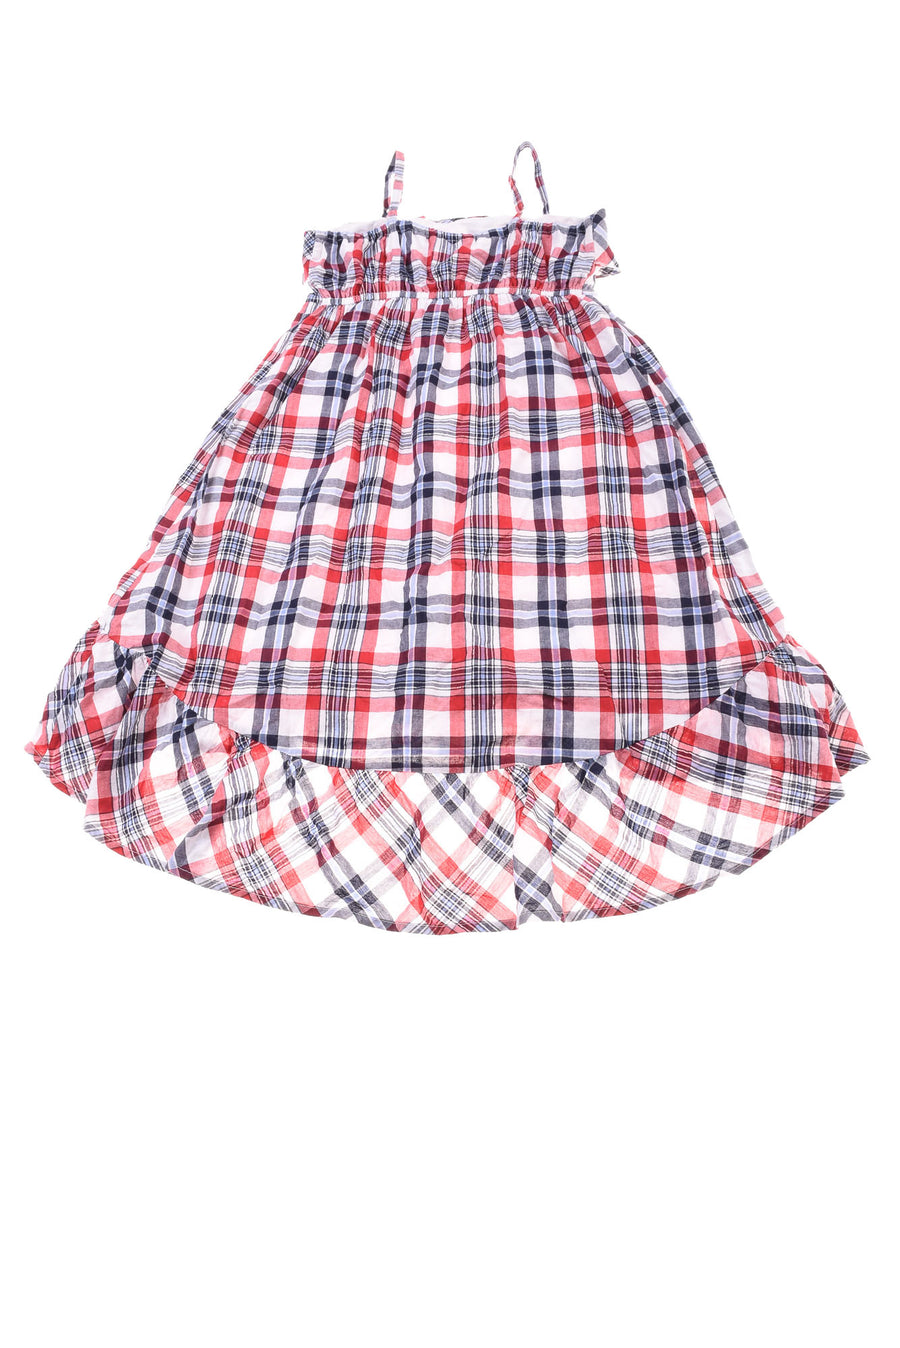 USED The Children's Place Girl's Dress 10/12 Red, White, & Blue